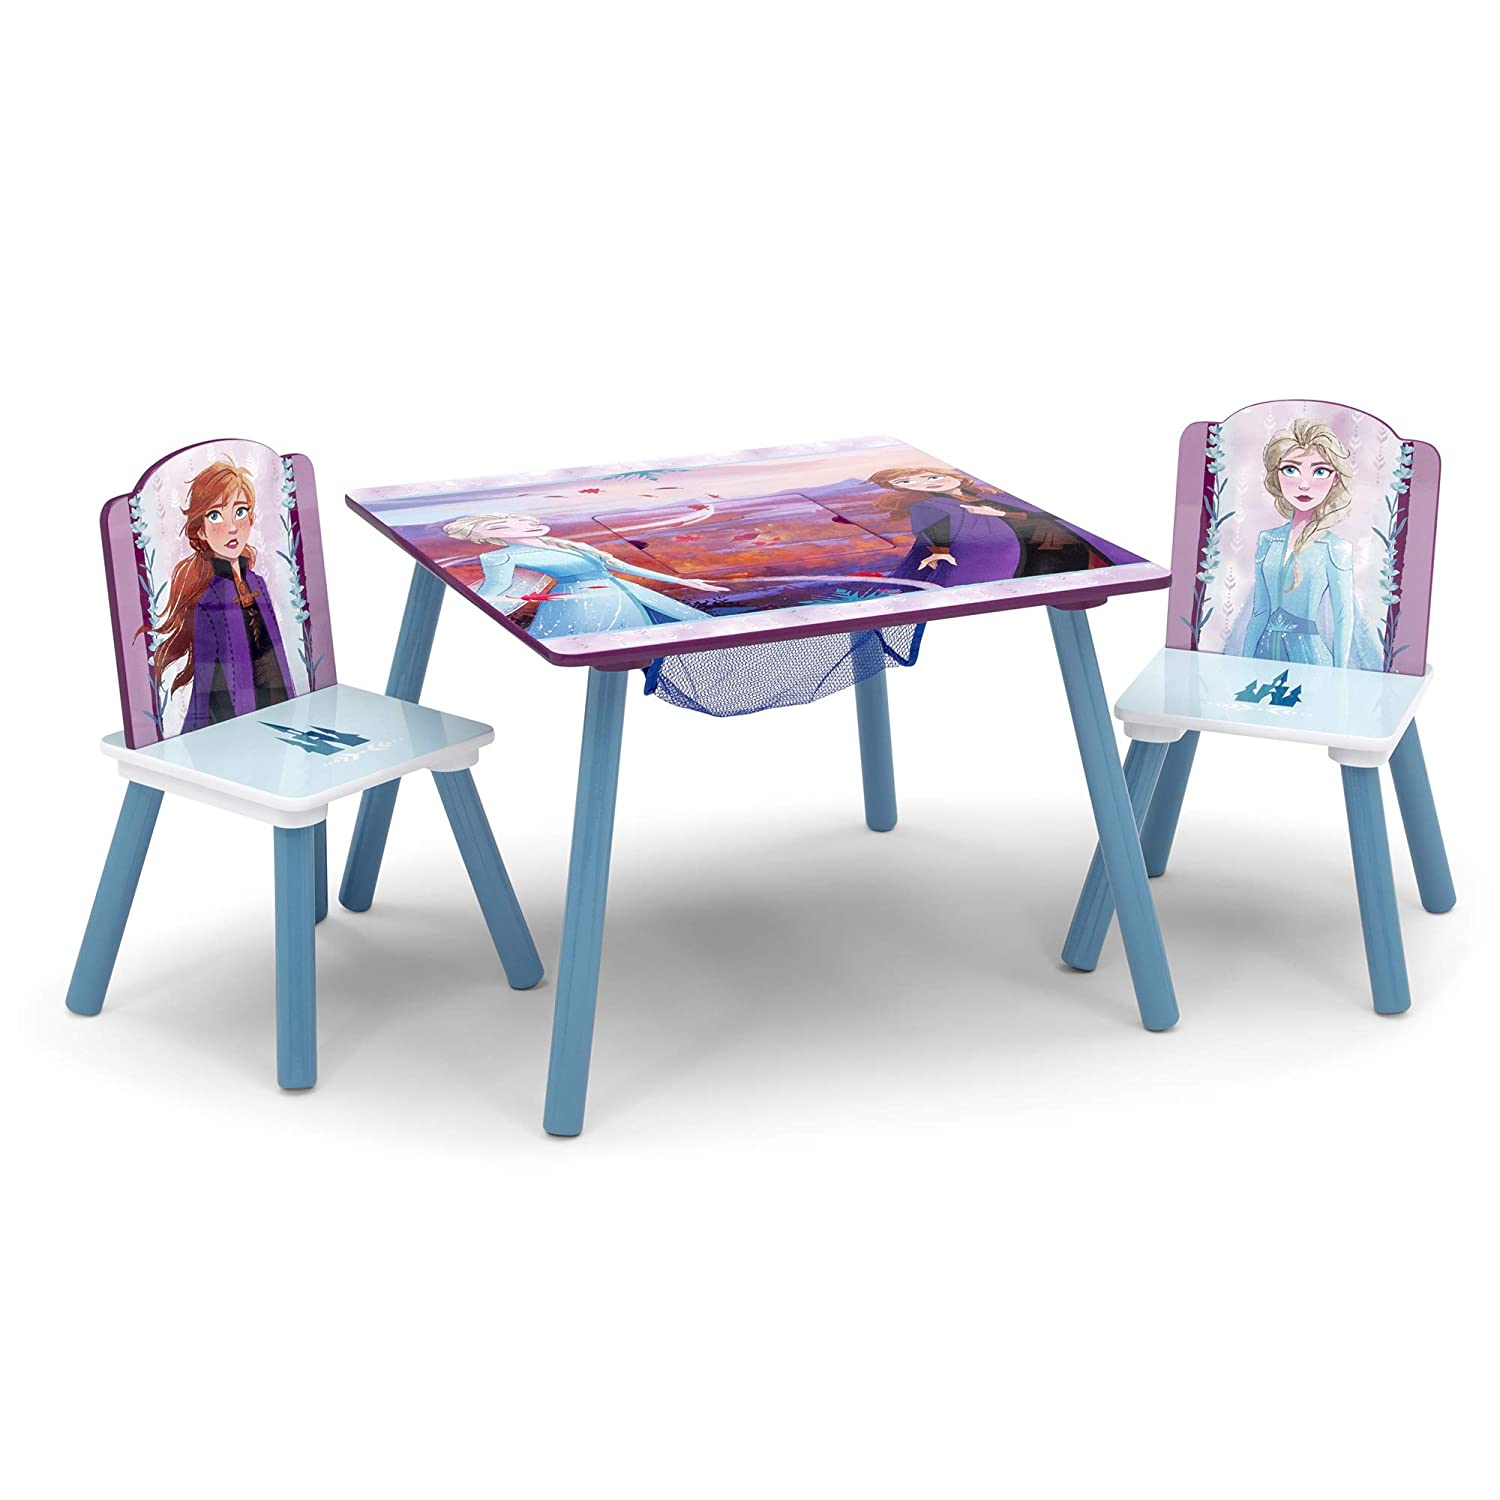 Delta Children Kids Table and Chair Wholesale Las Vegas Mall I Set 2 Chairs Storage With